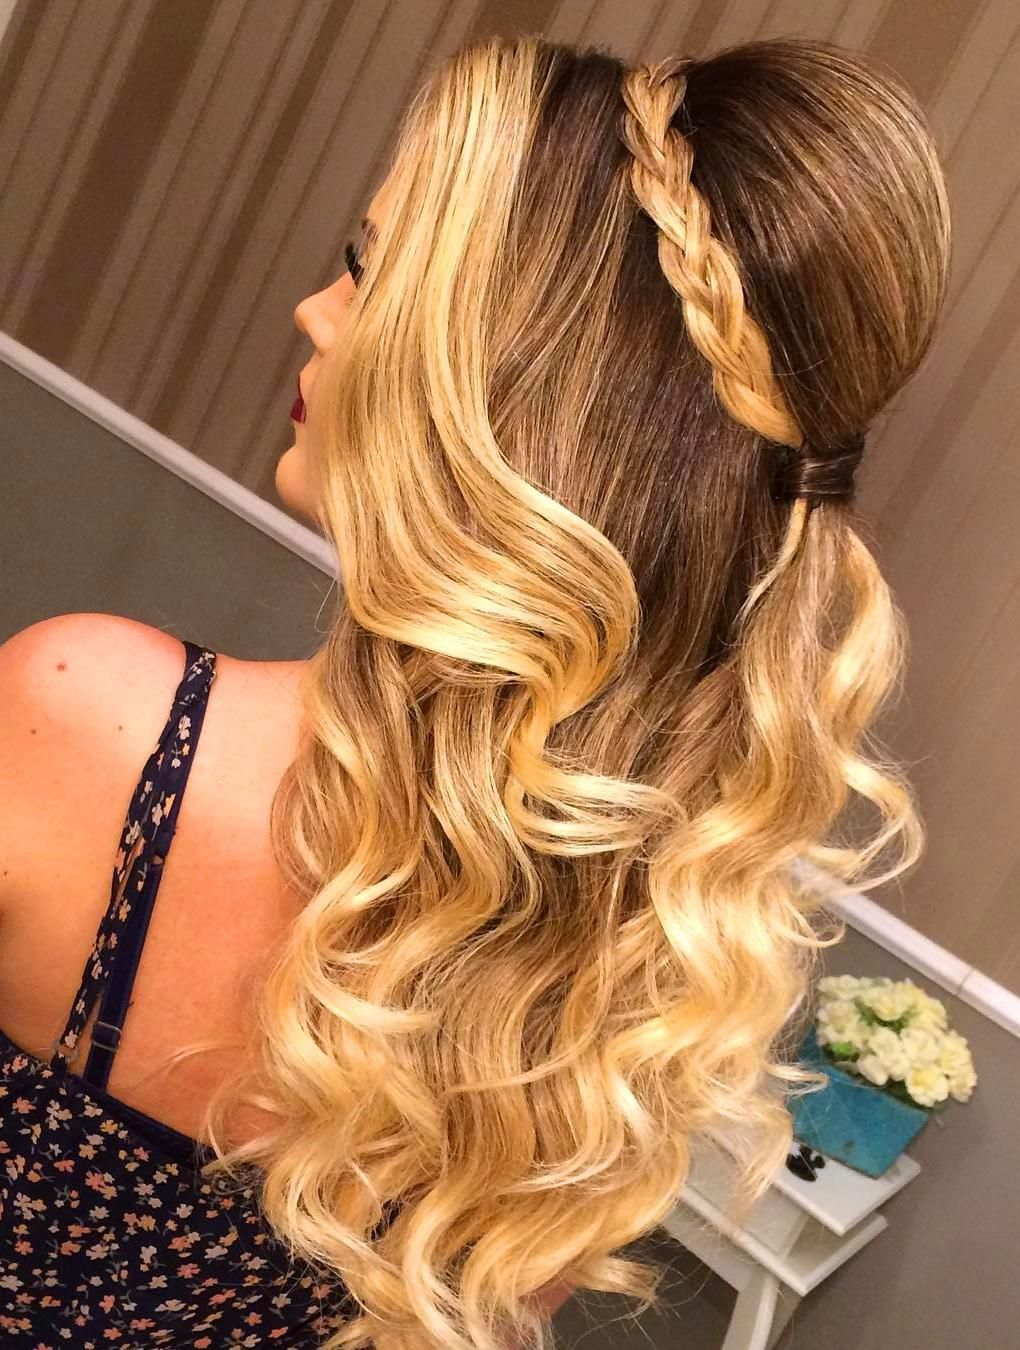 50 Cute Hairstyles For Girls Hair: Casual And Prom Looks | Hair styles, Girl hairstyles, Hair